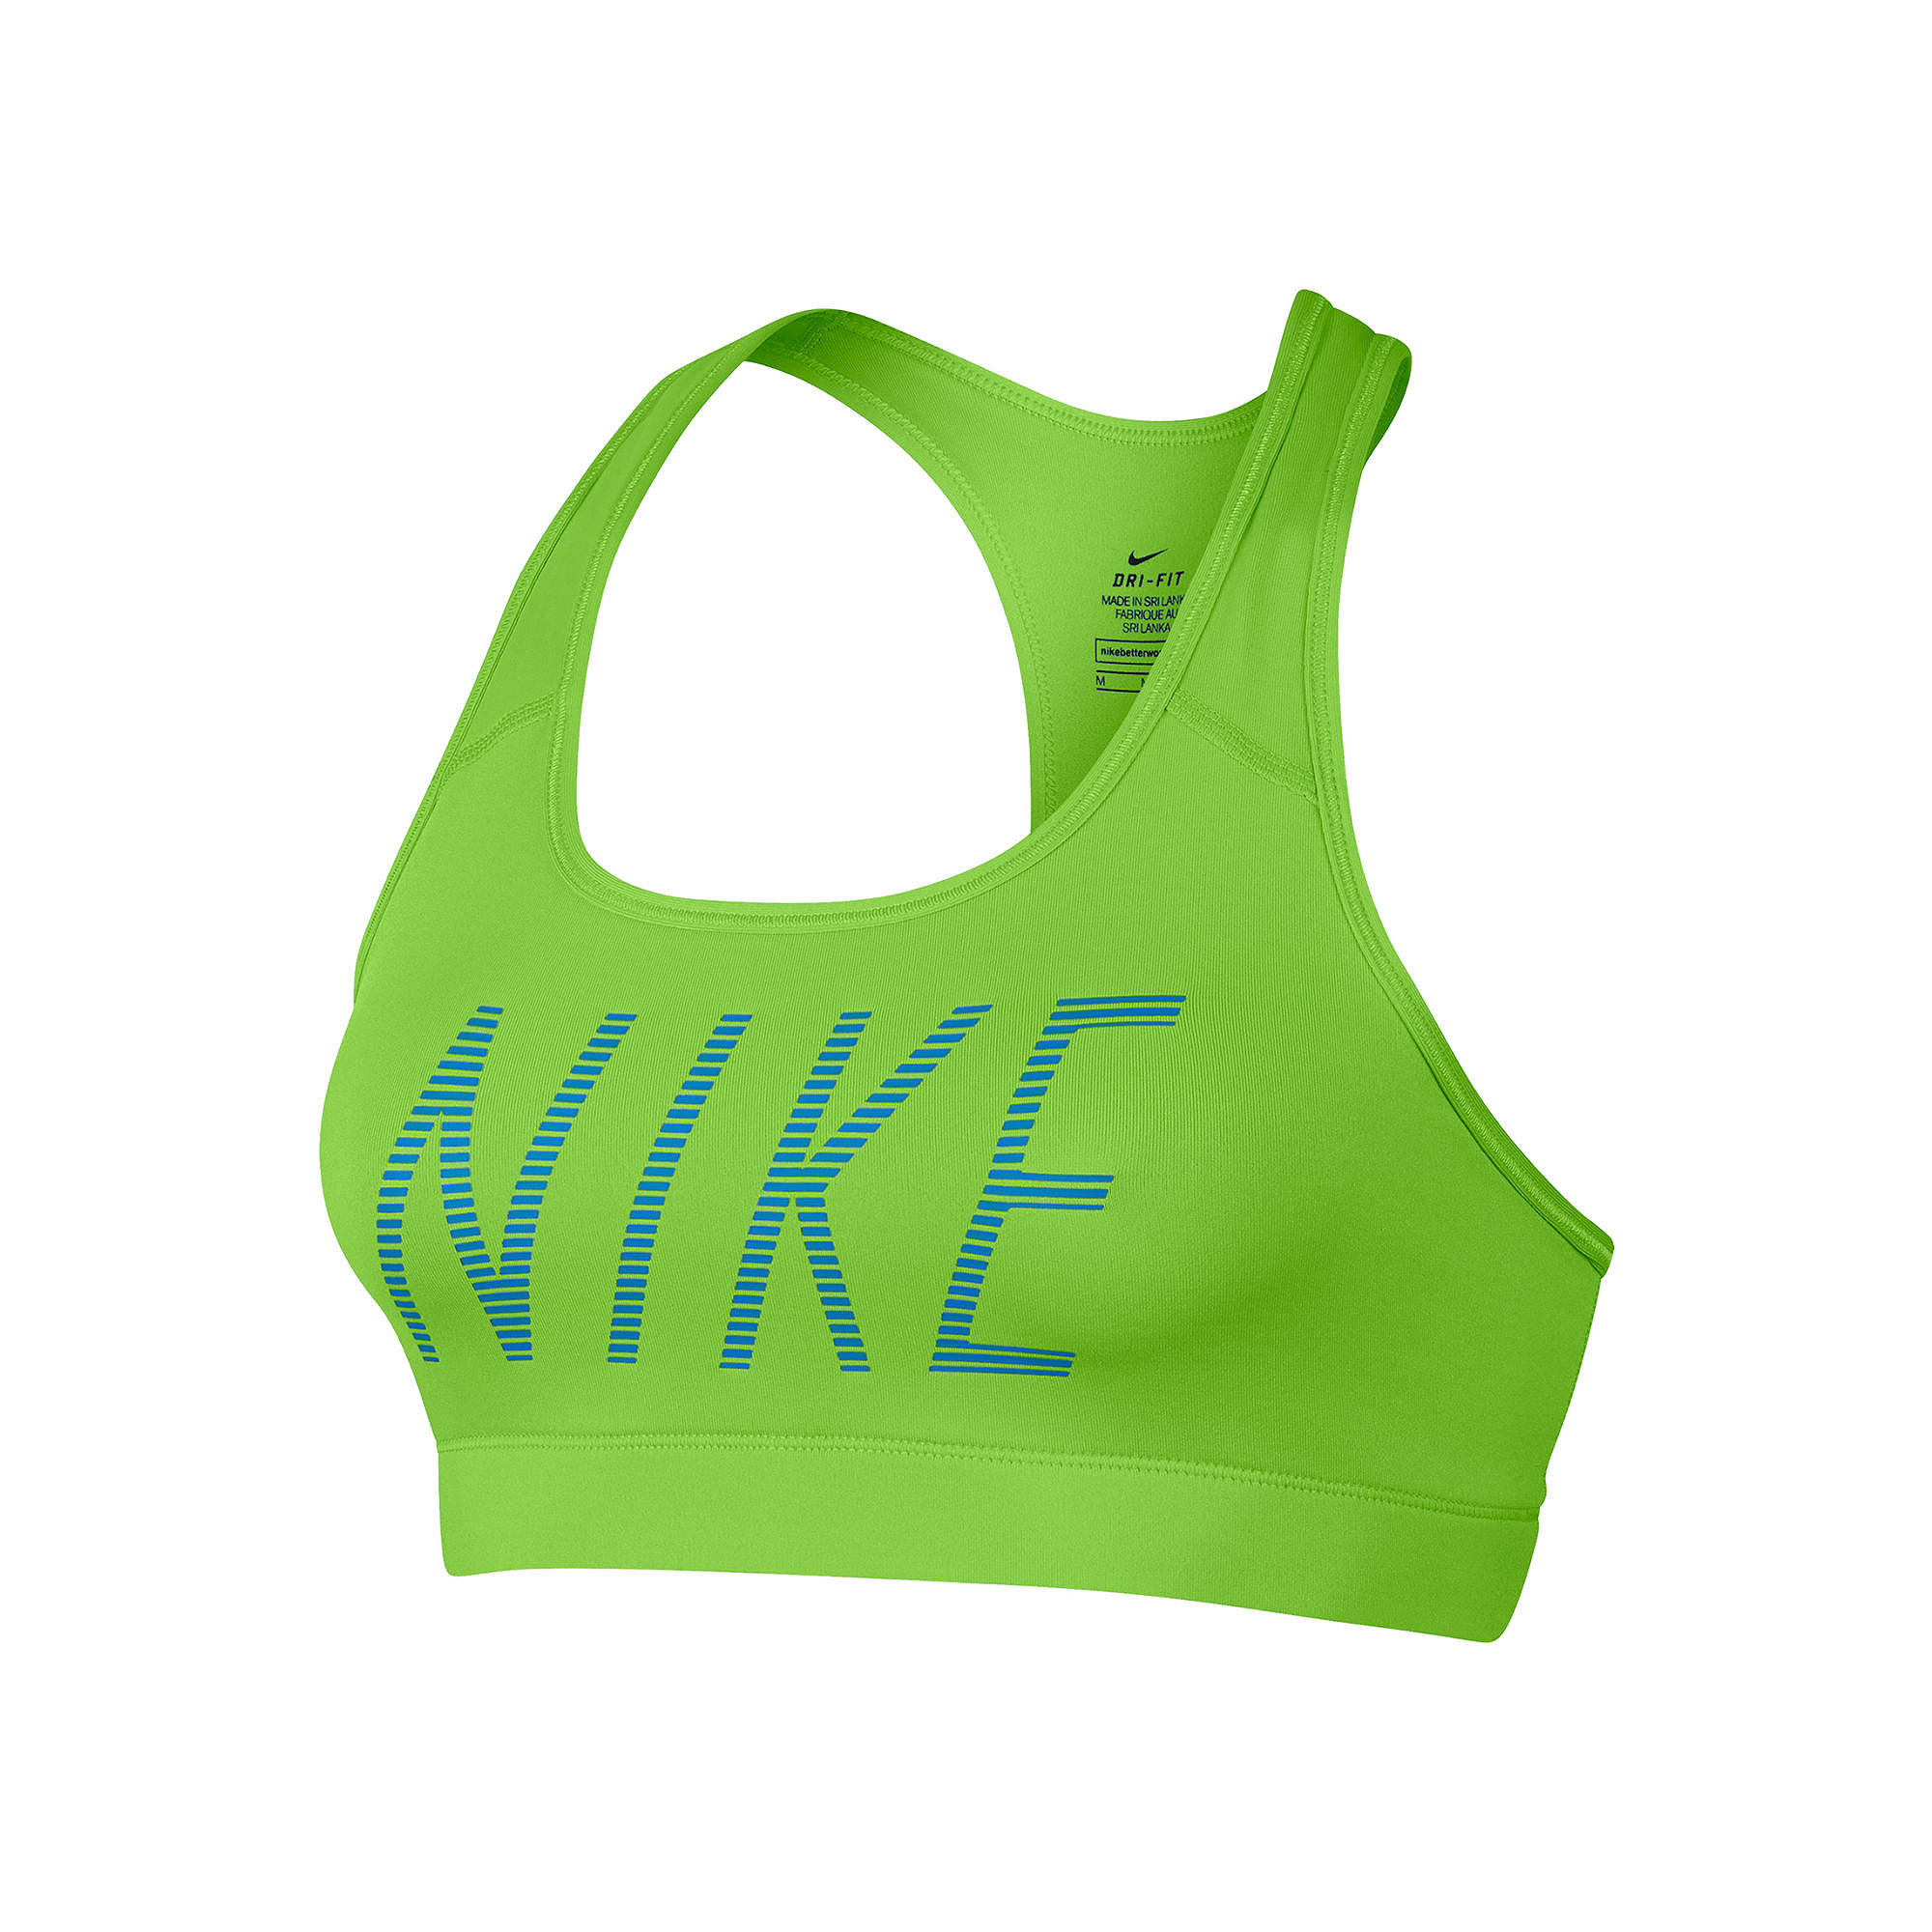 13c07d4c4104e UPC 676556603998 product image for Nike Victory Compression Bra